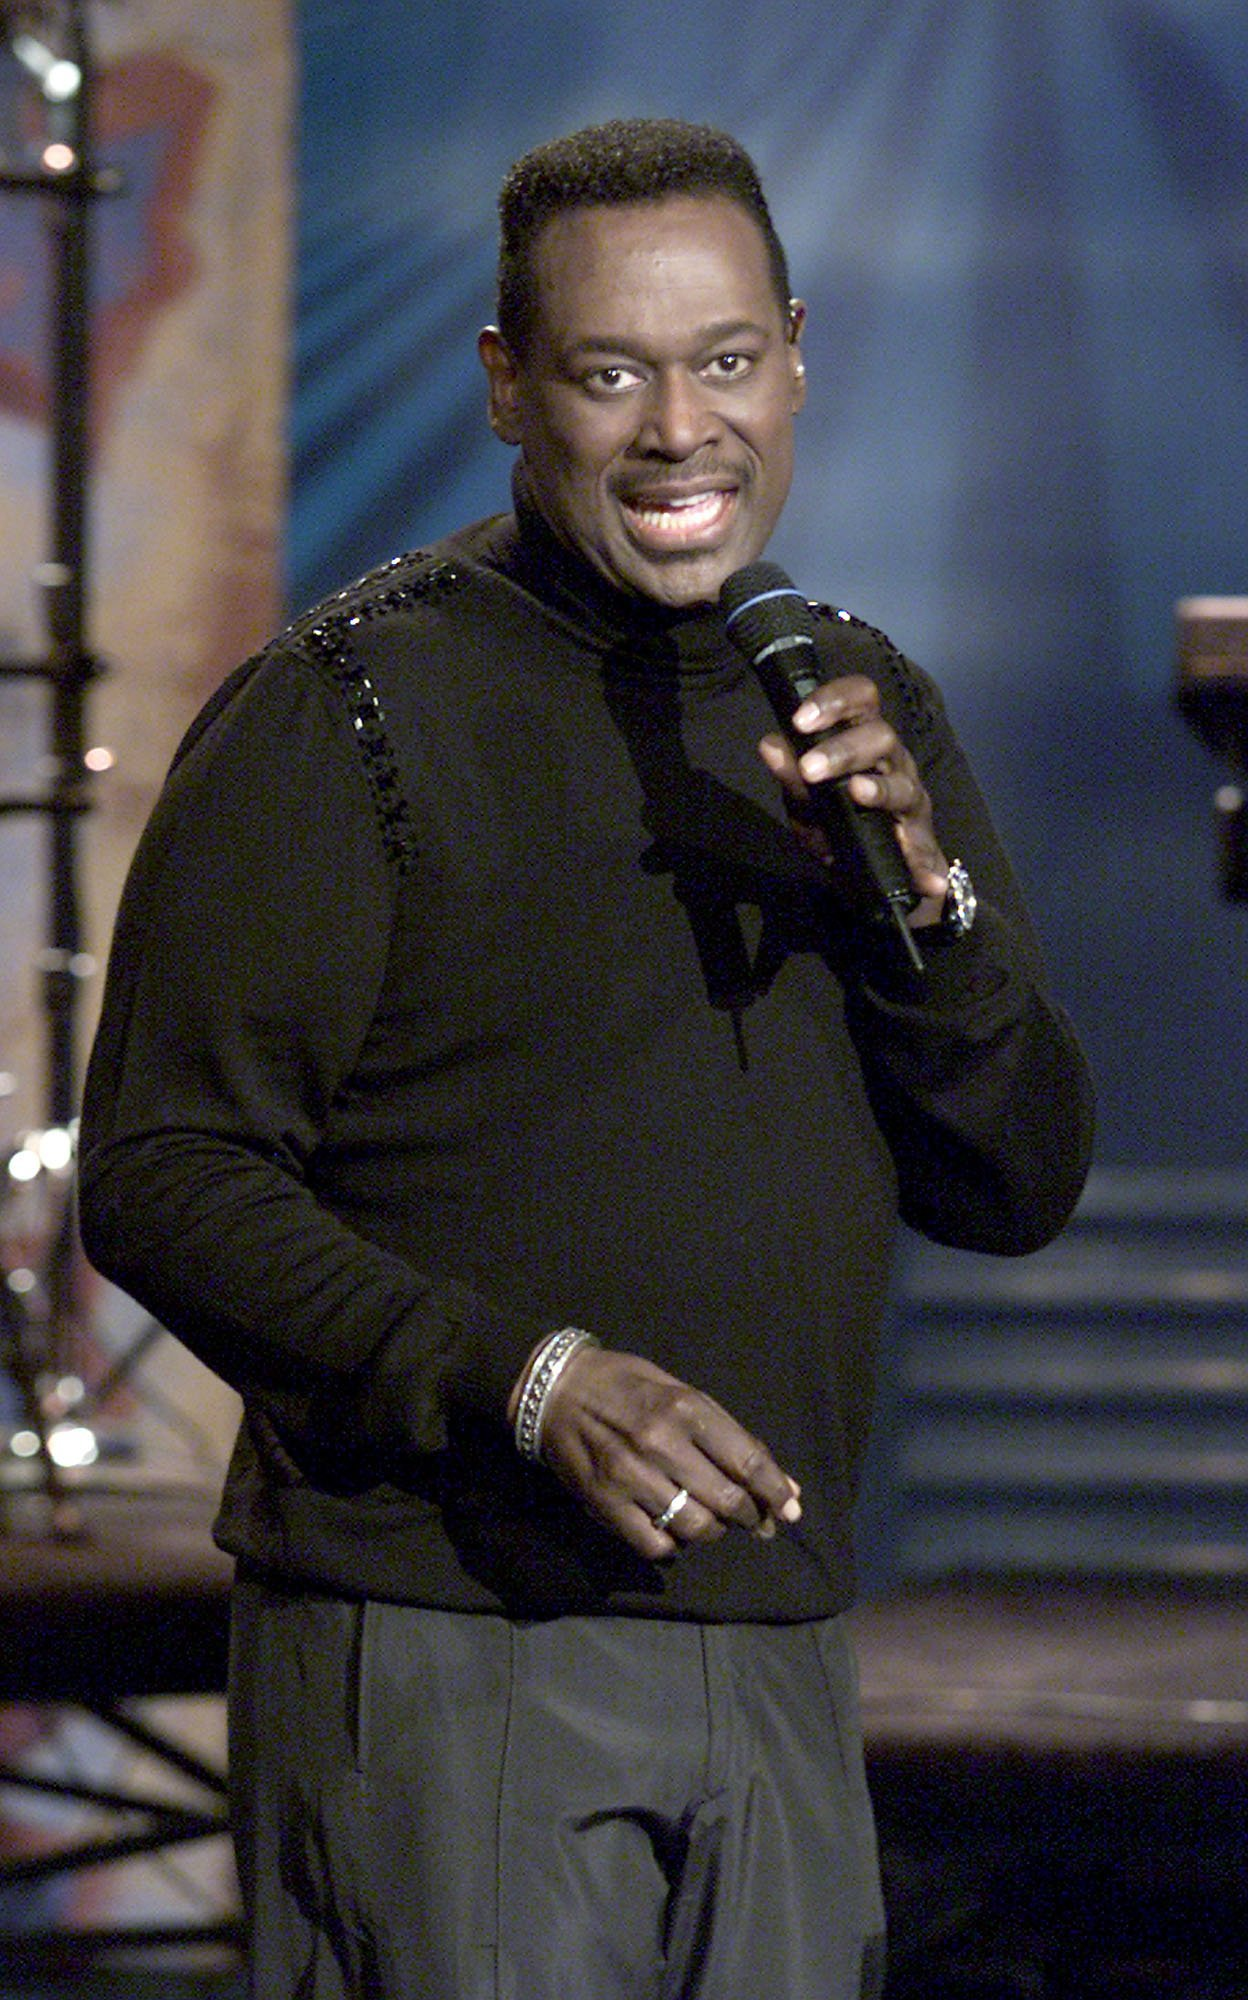 Luther Vandross at the 'Tonight Show with Jay Leno' at the NBC Studios in California on Jun. 20, 2001    Photo: Getty Images